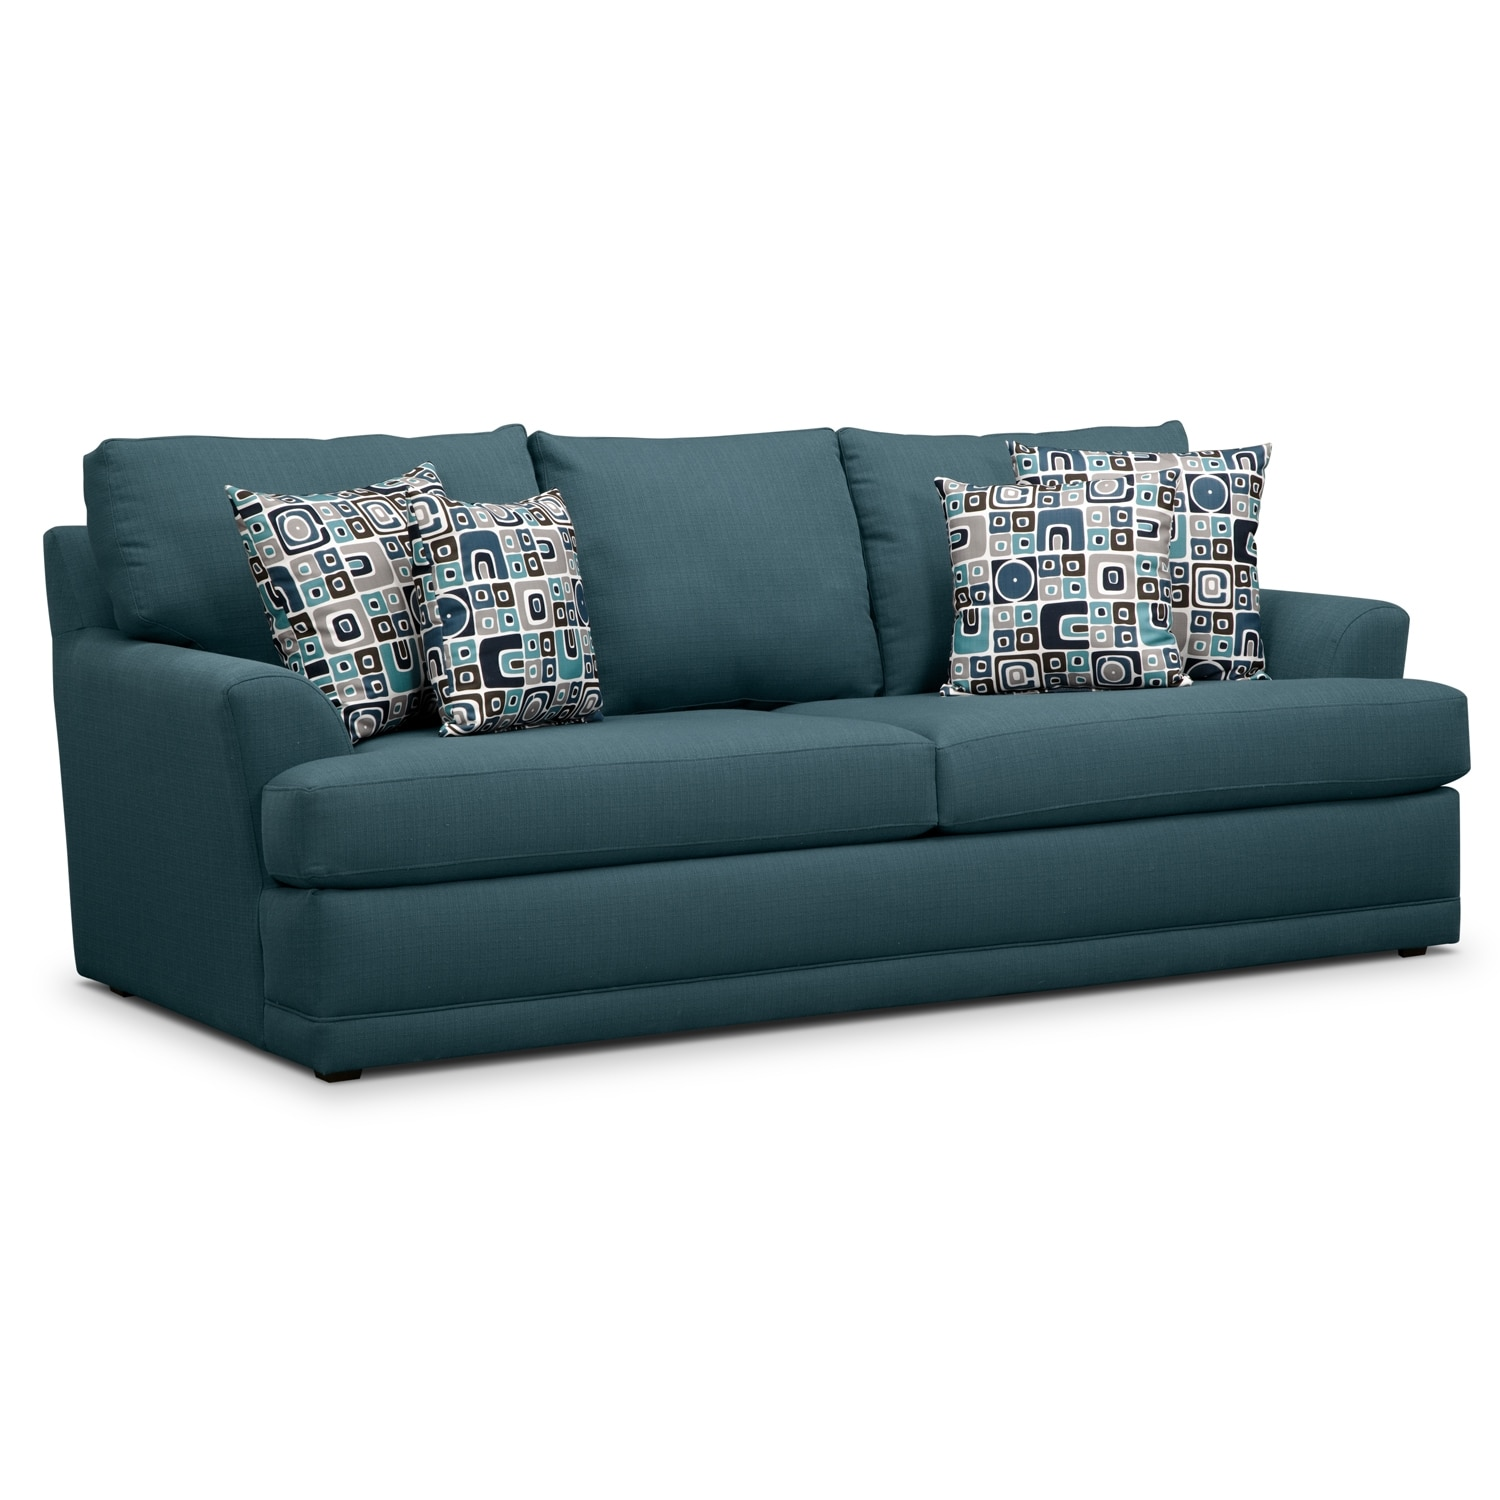 Calamar Teal Upholstery Queen Memory Foam Sleeper Sofa : Furniture.com